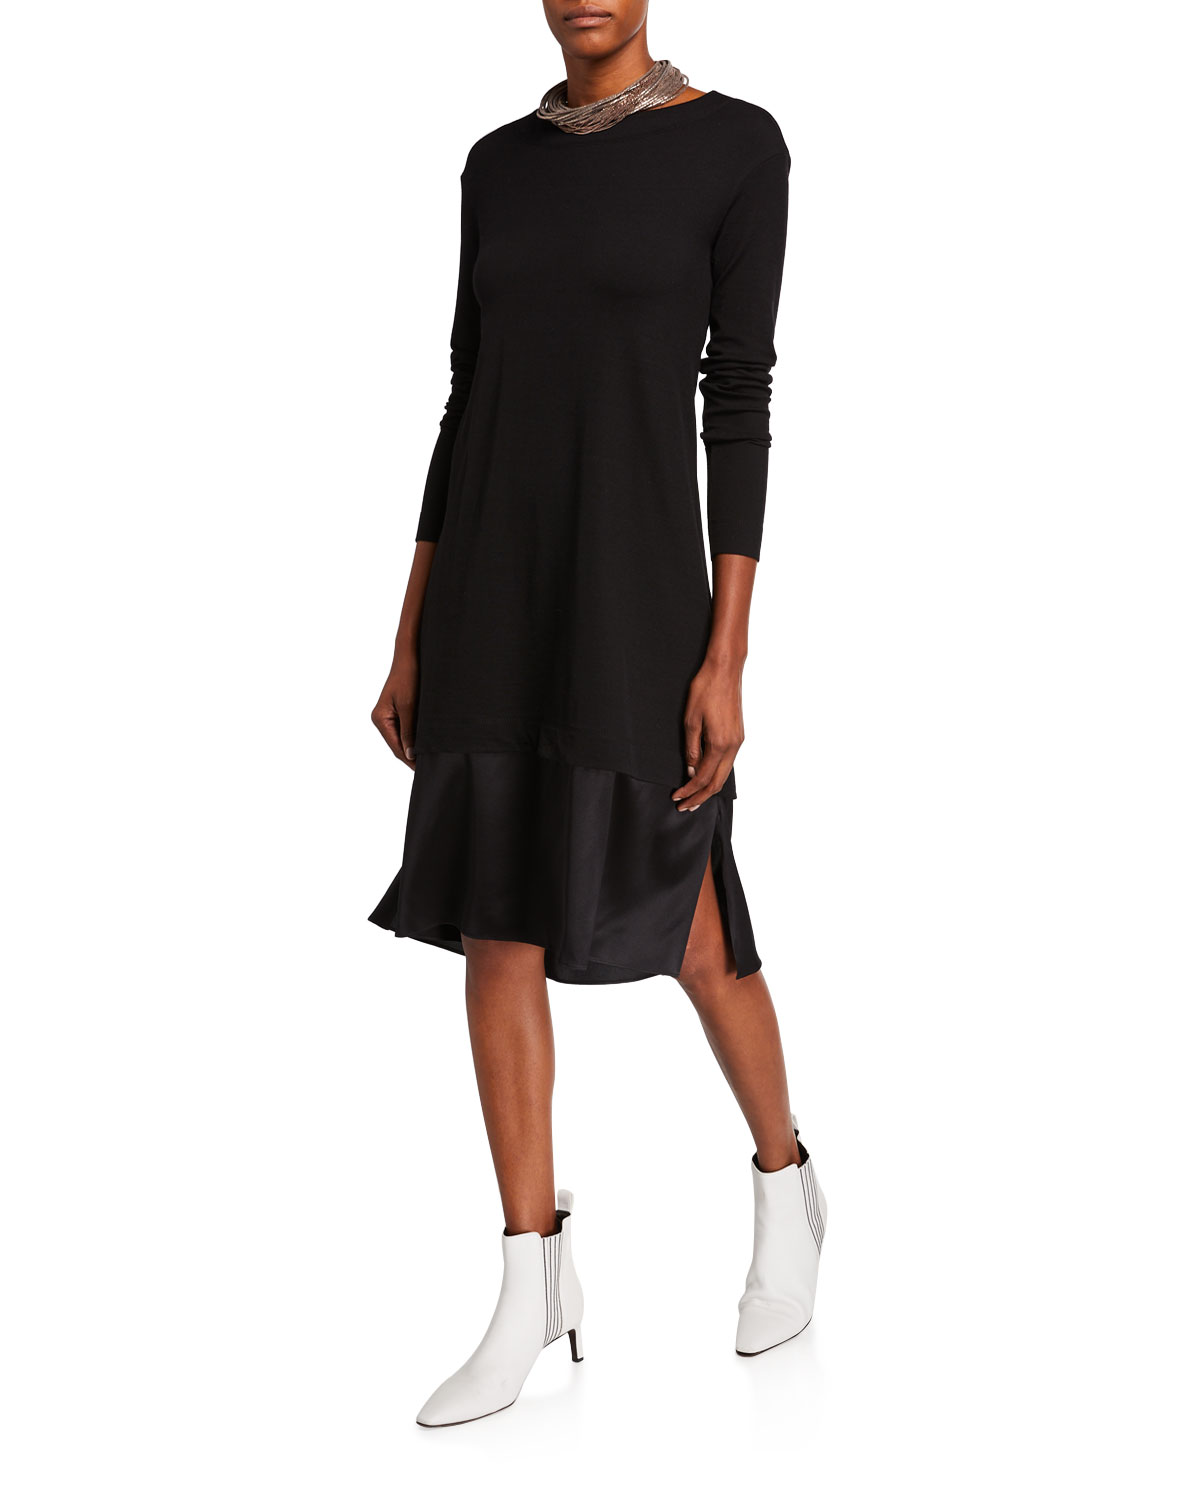 Brunello Cucinelli Wool Jersey Satin-Lined Dress